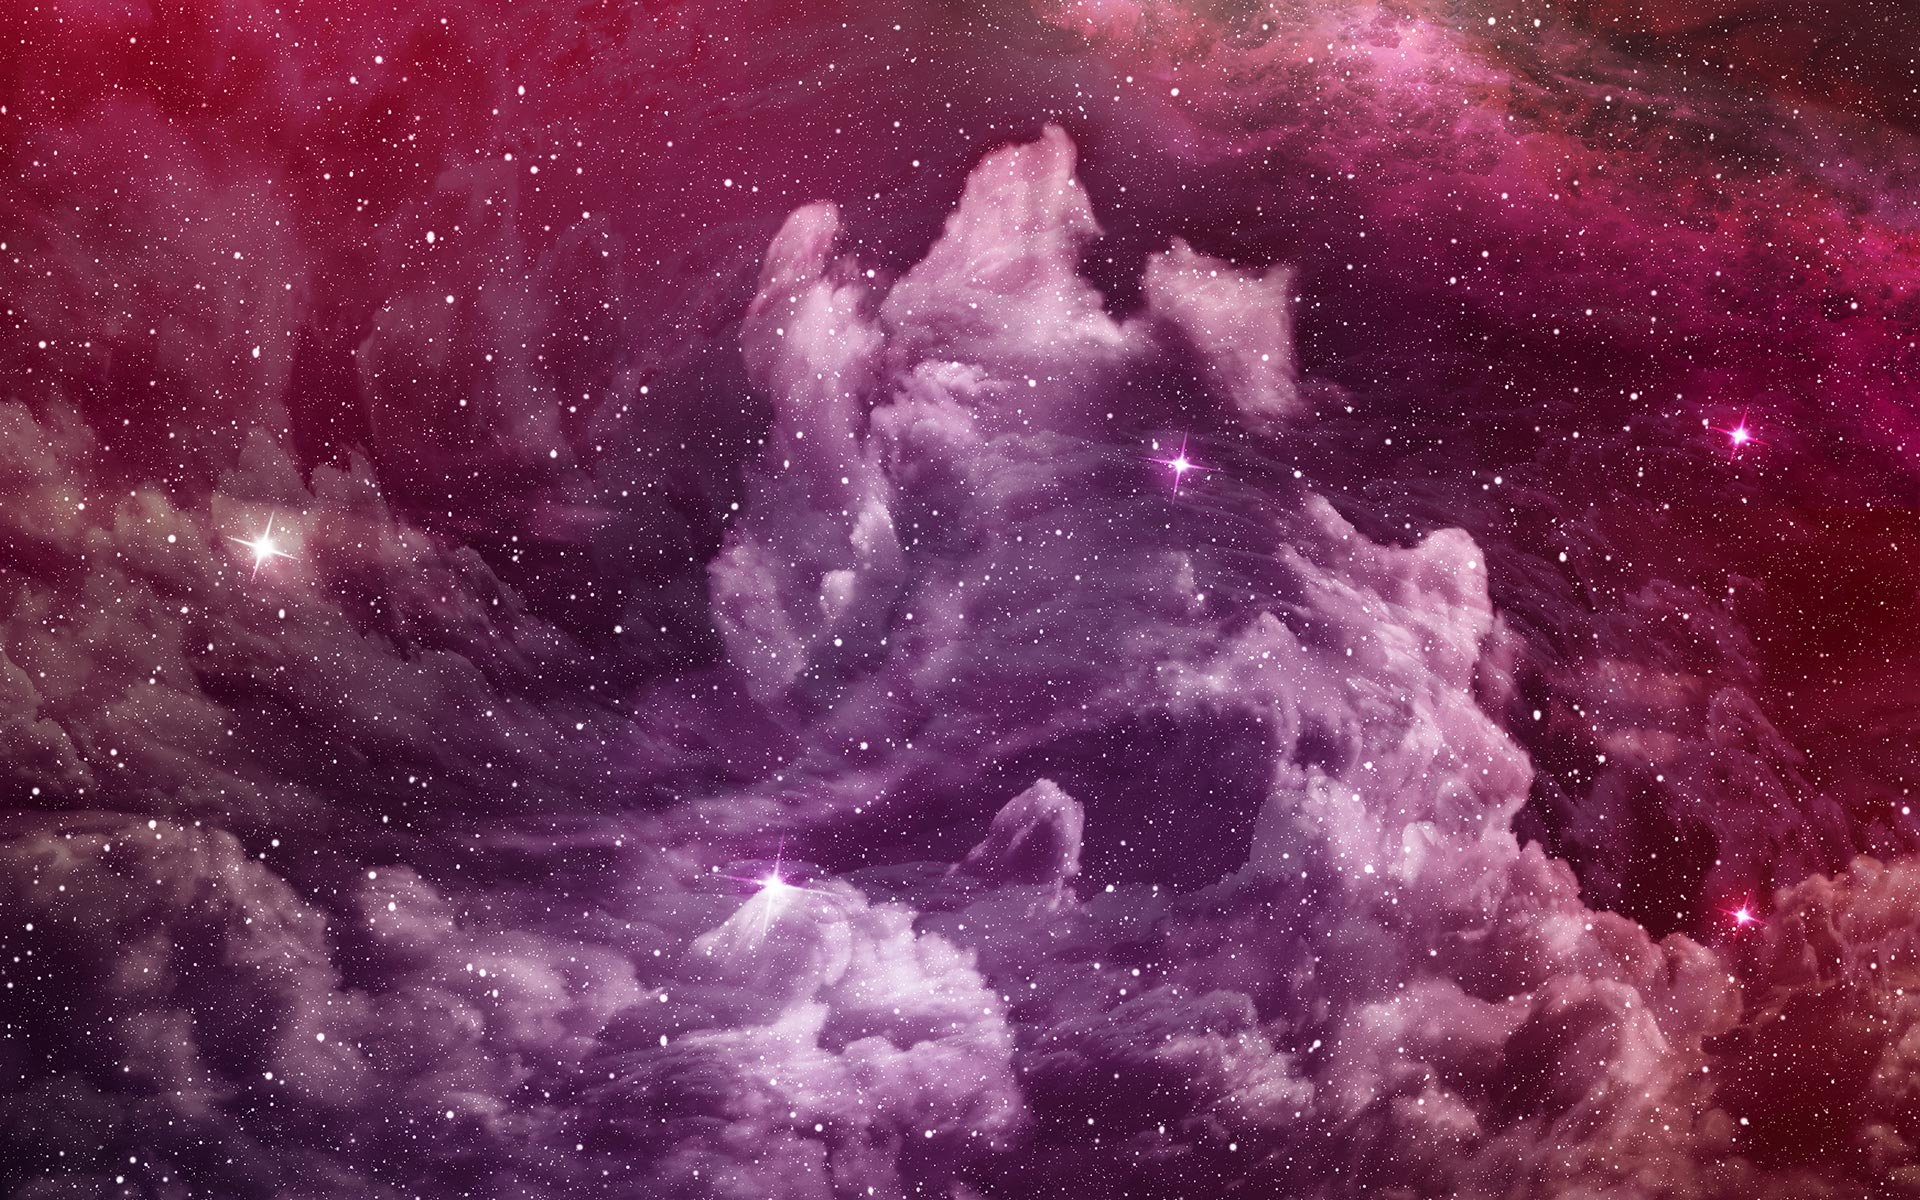 Space Galaxy Hd Wallpapers 23 - Queen Kong Outer Space , HD Wallpaper & Backgrounds